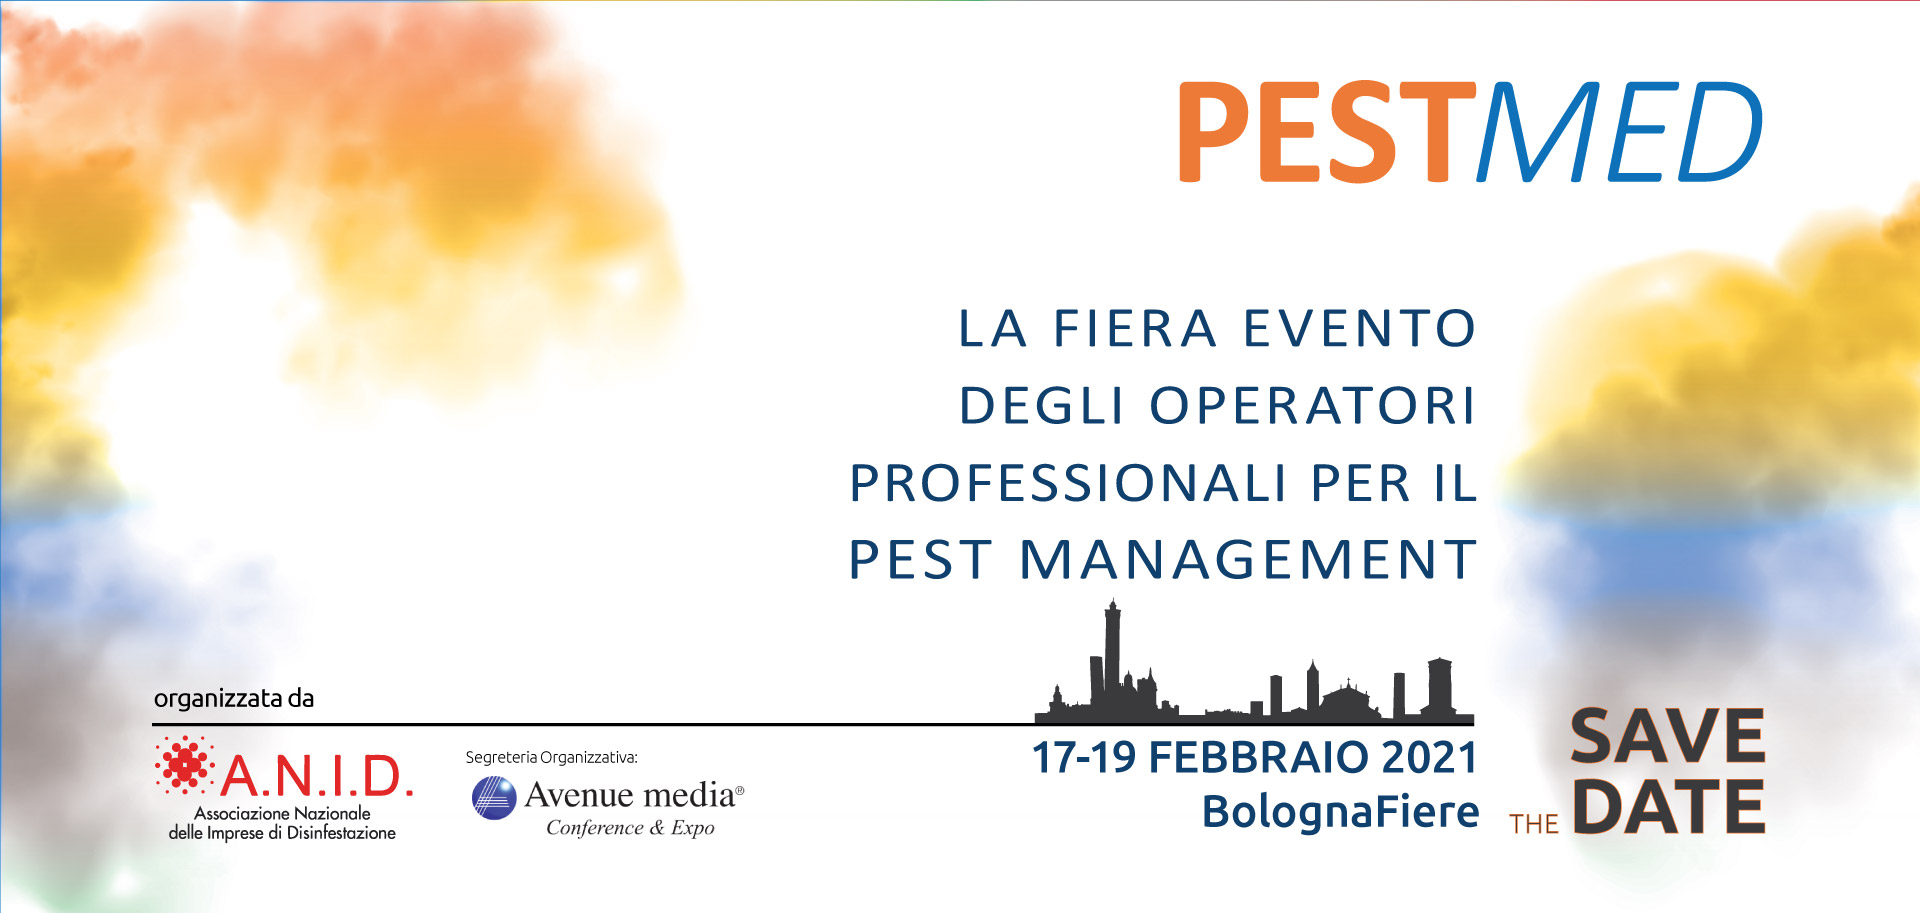 pestmed-rev4-skyline-bologna